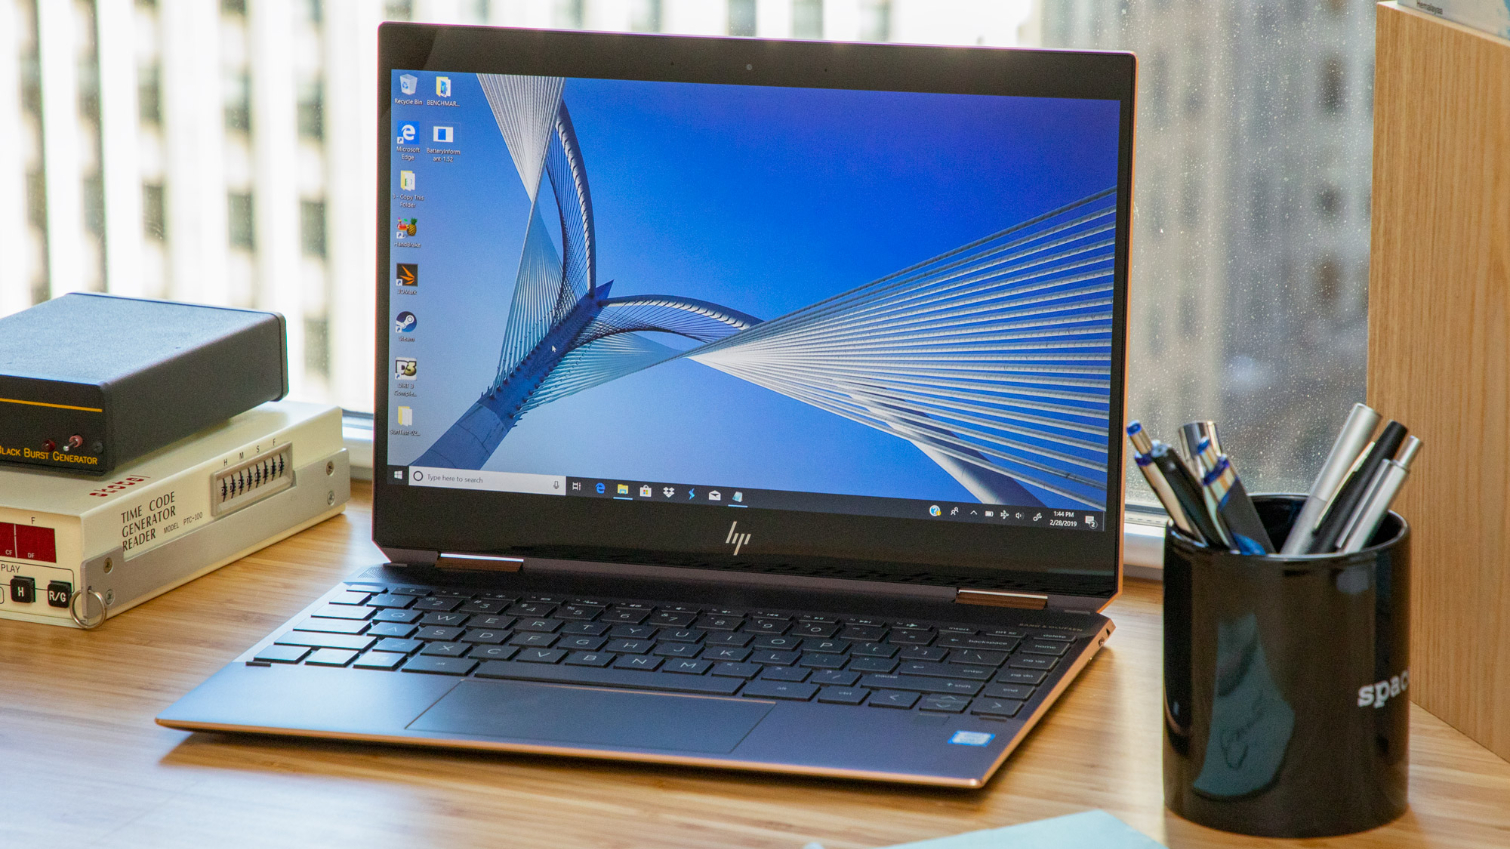 HP Spectre x360 13 (2019) Laptop Review: Best Consumer 2-in